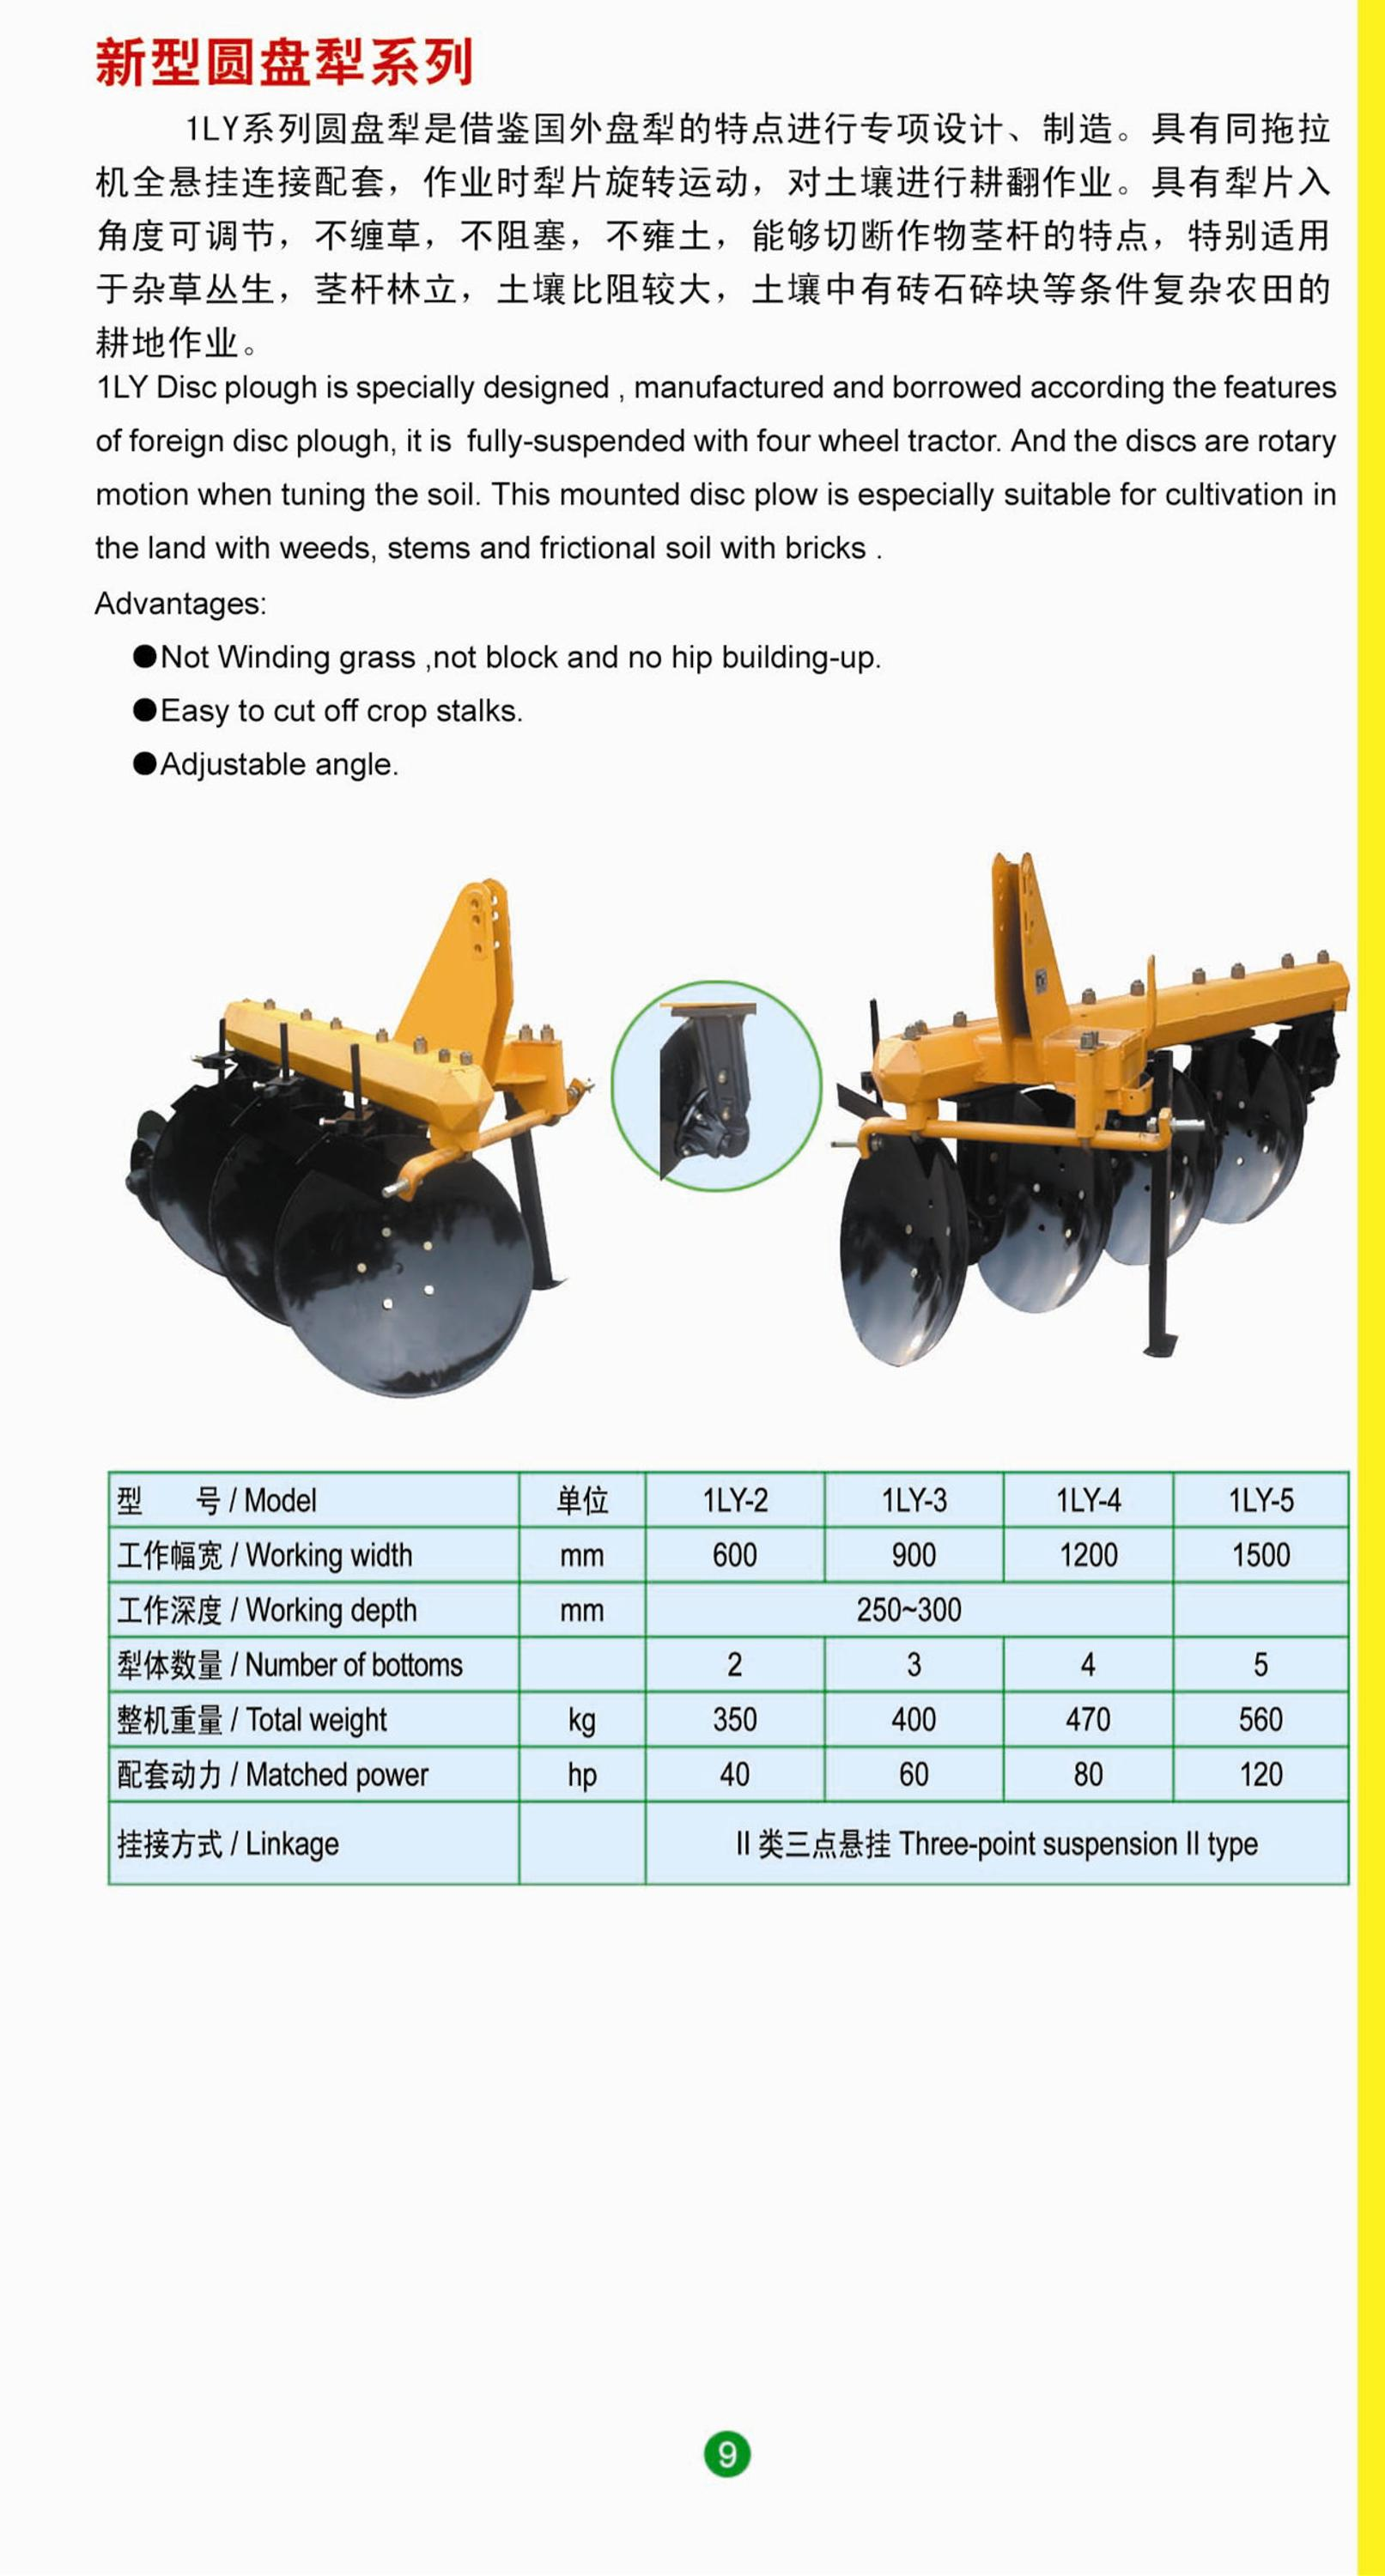 Disc plough 1LY-320